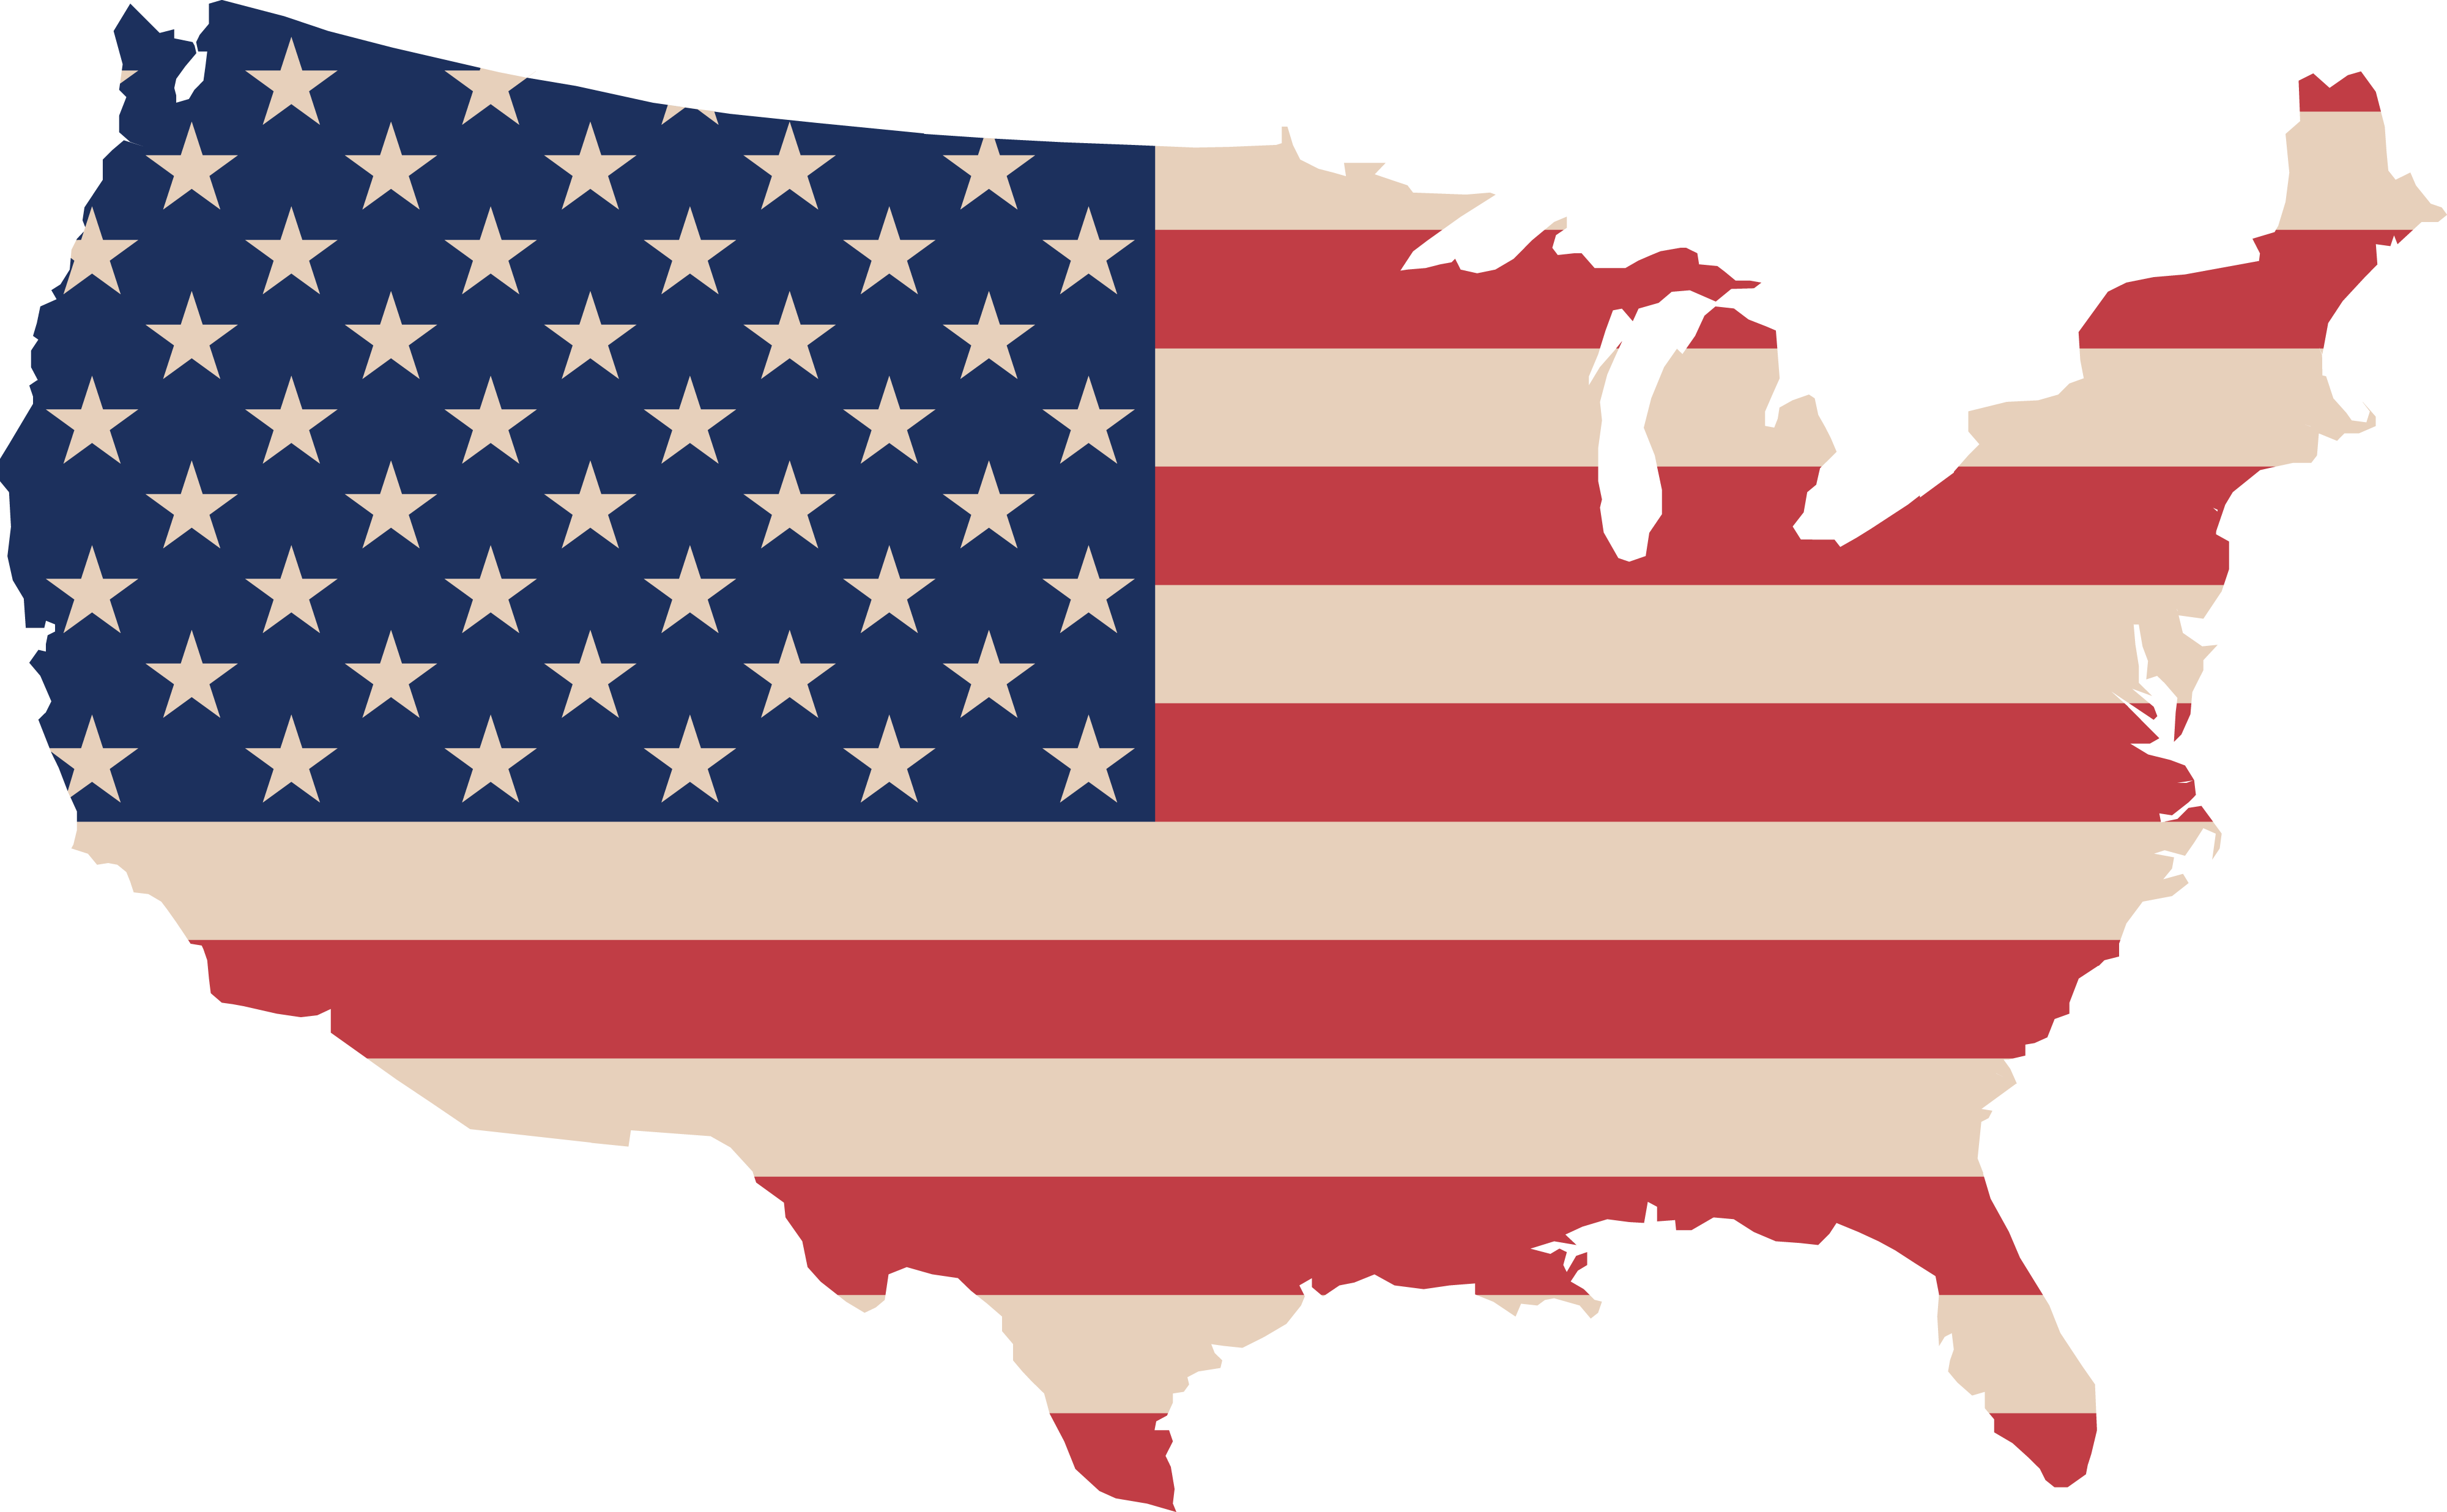 Clipart Of America.